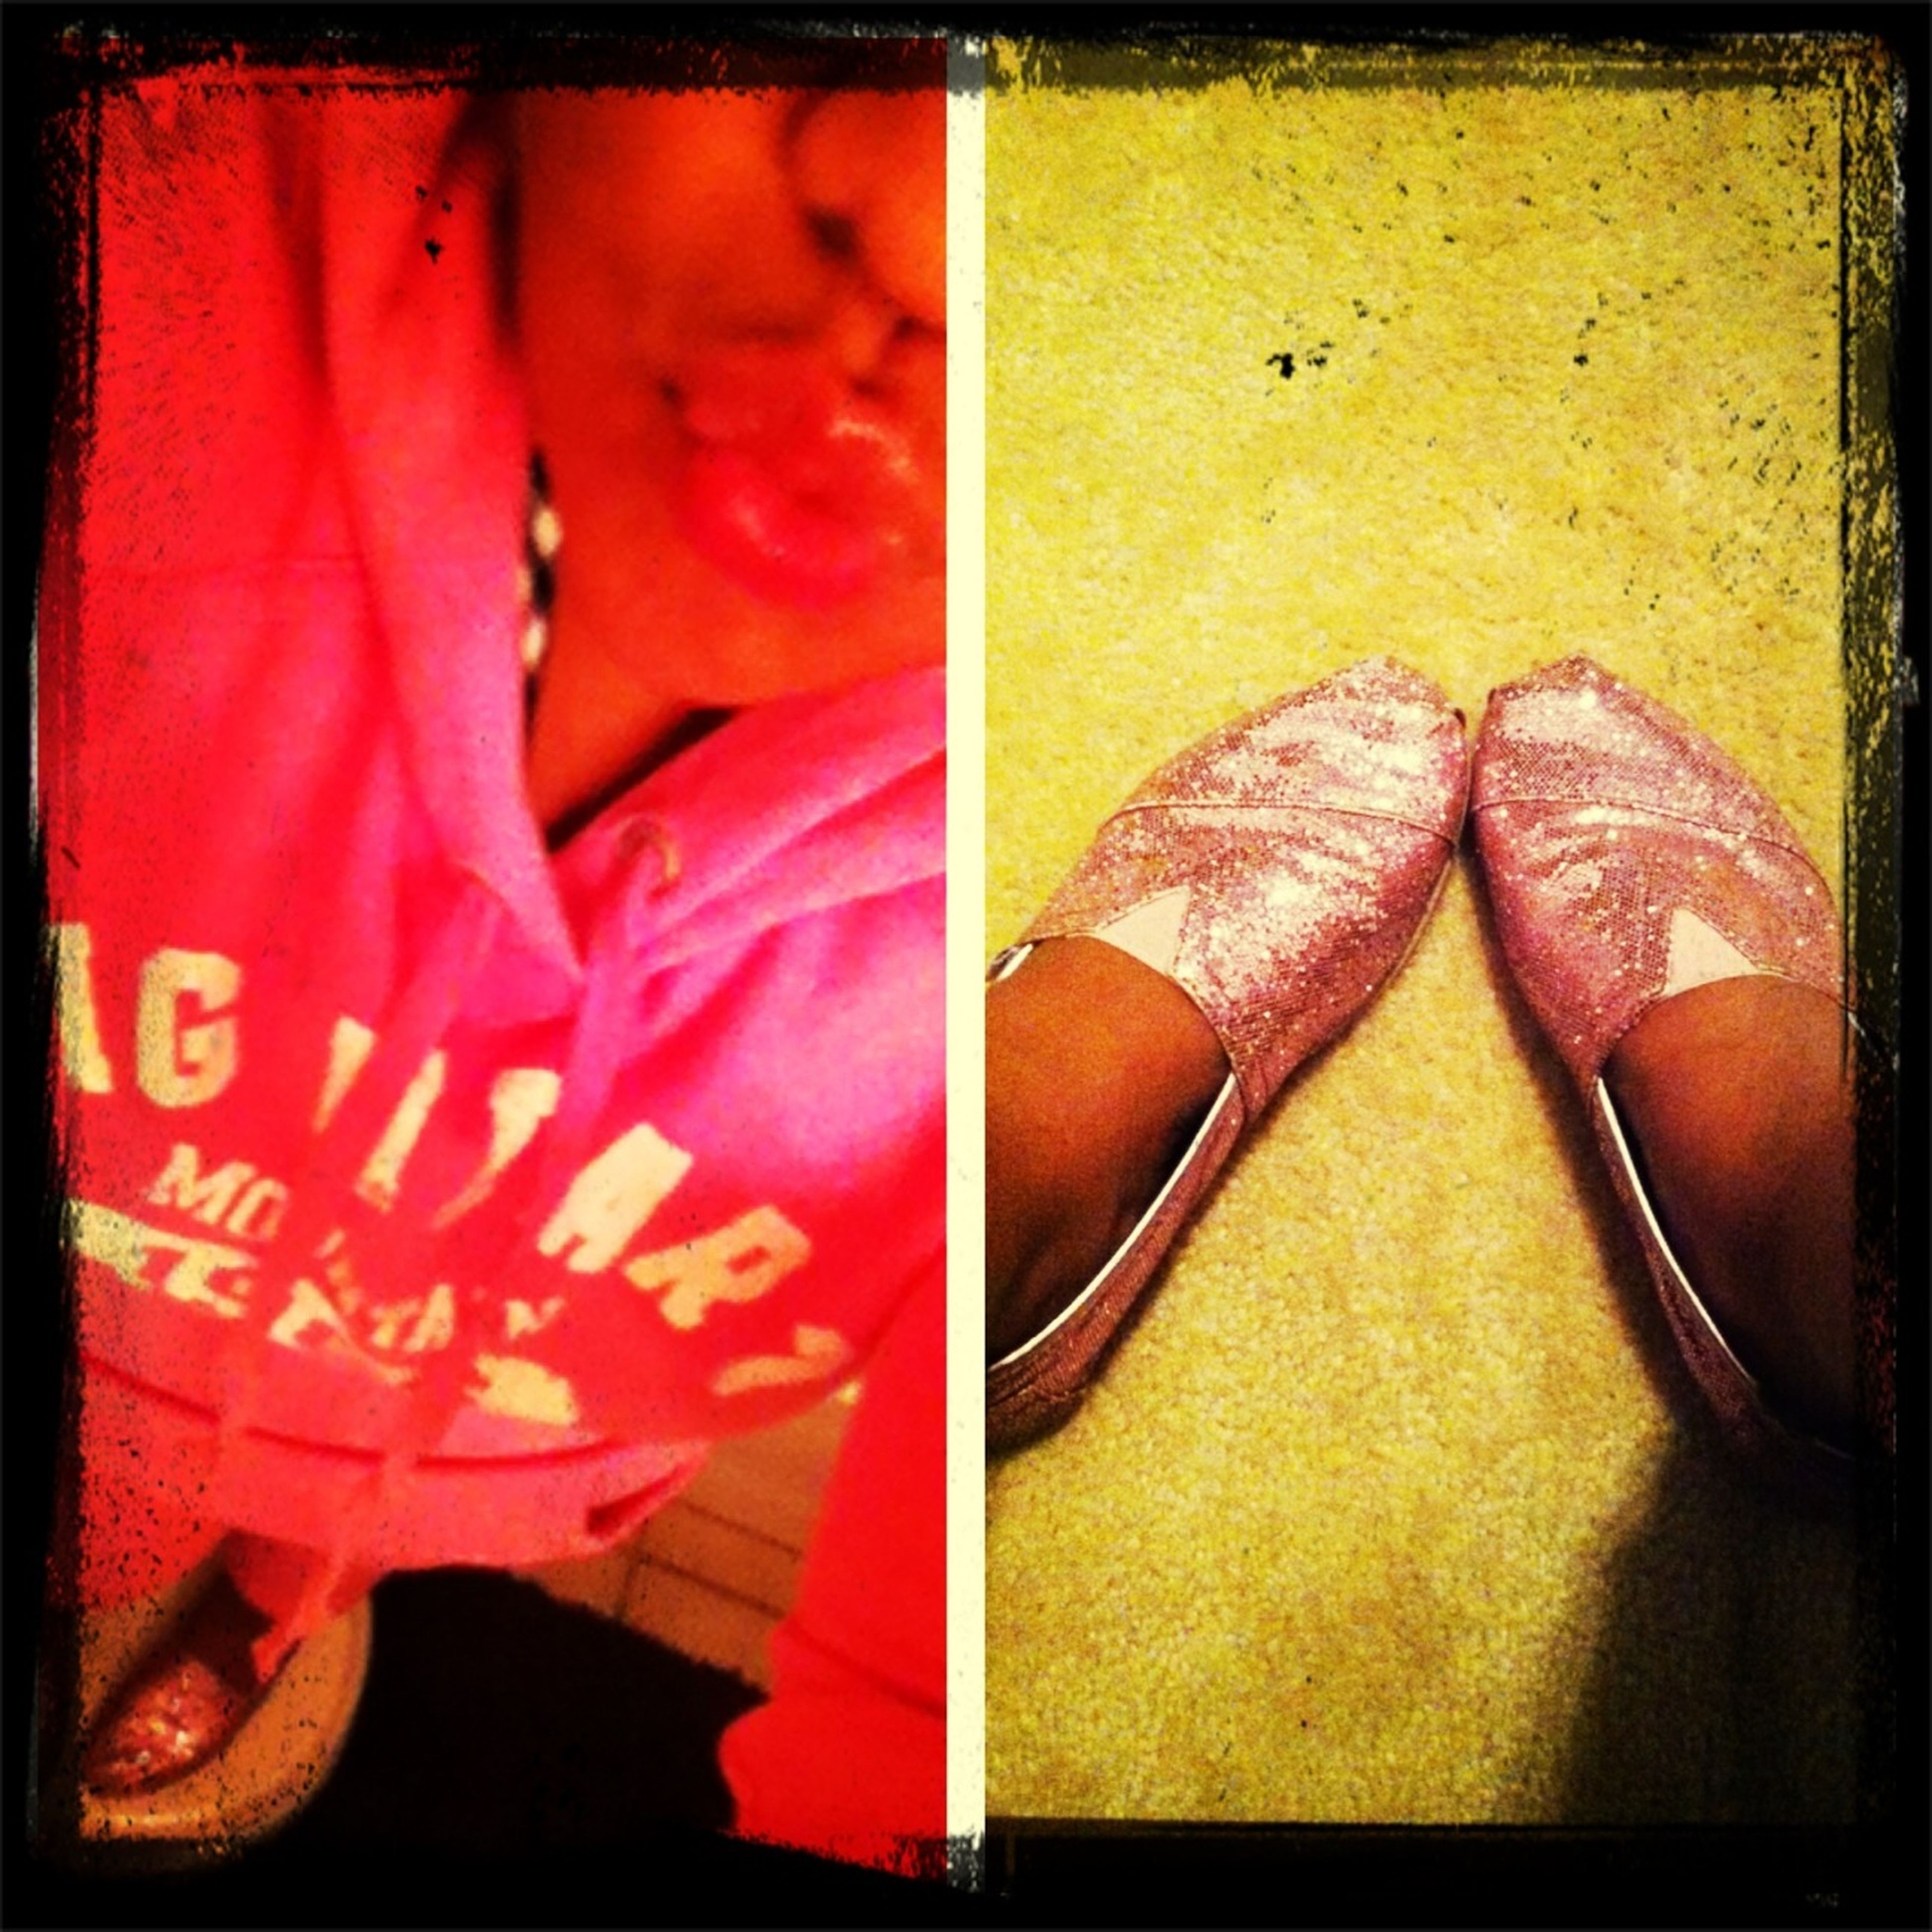 Tdy Victoria Secrect Nd Toms